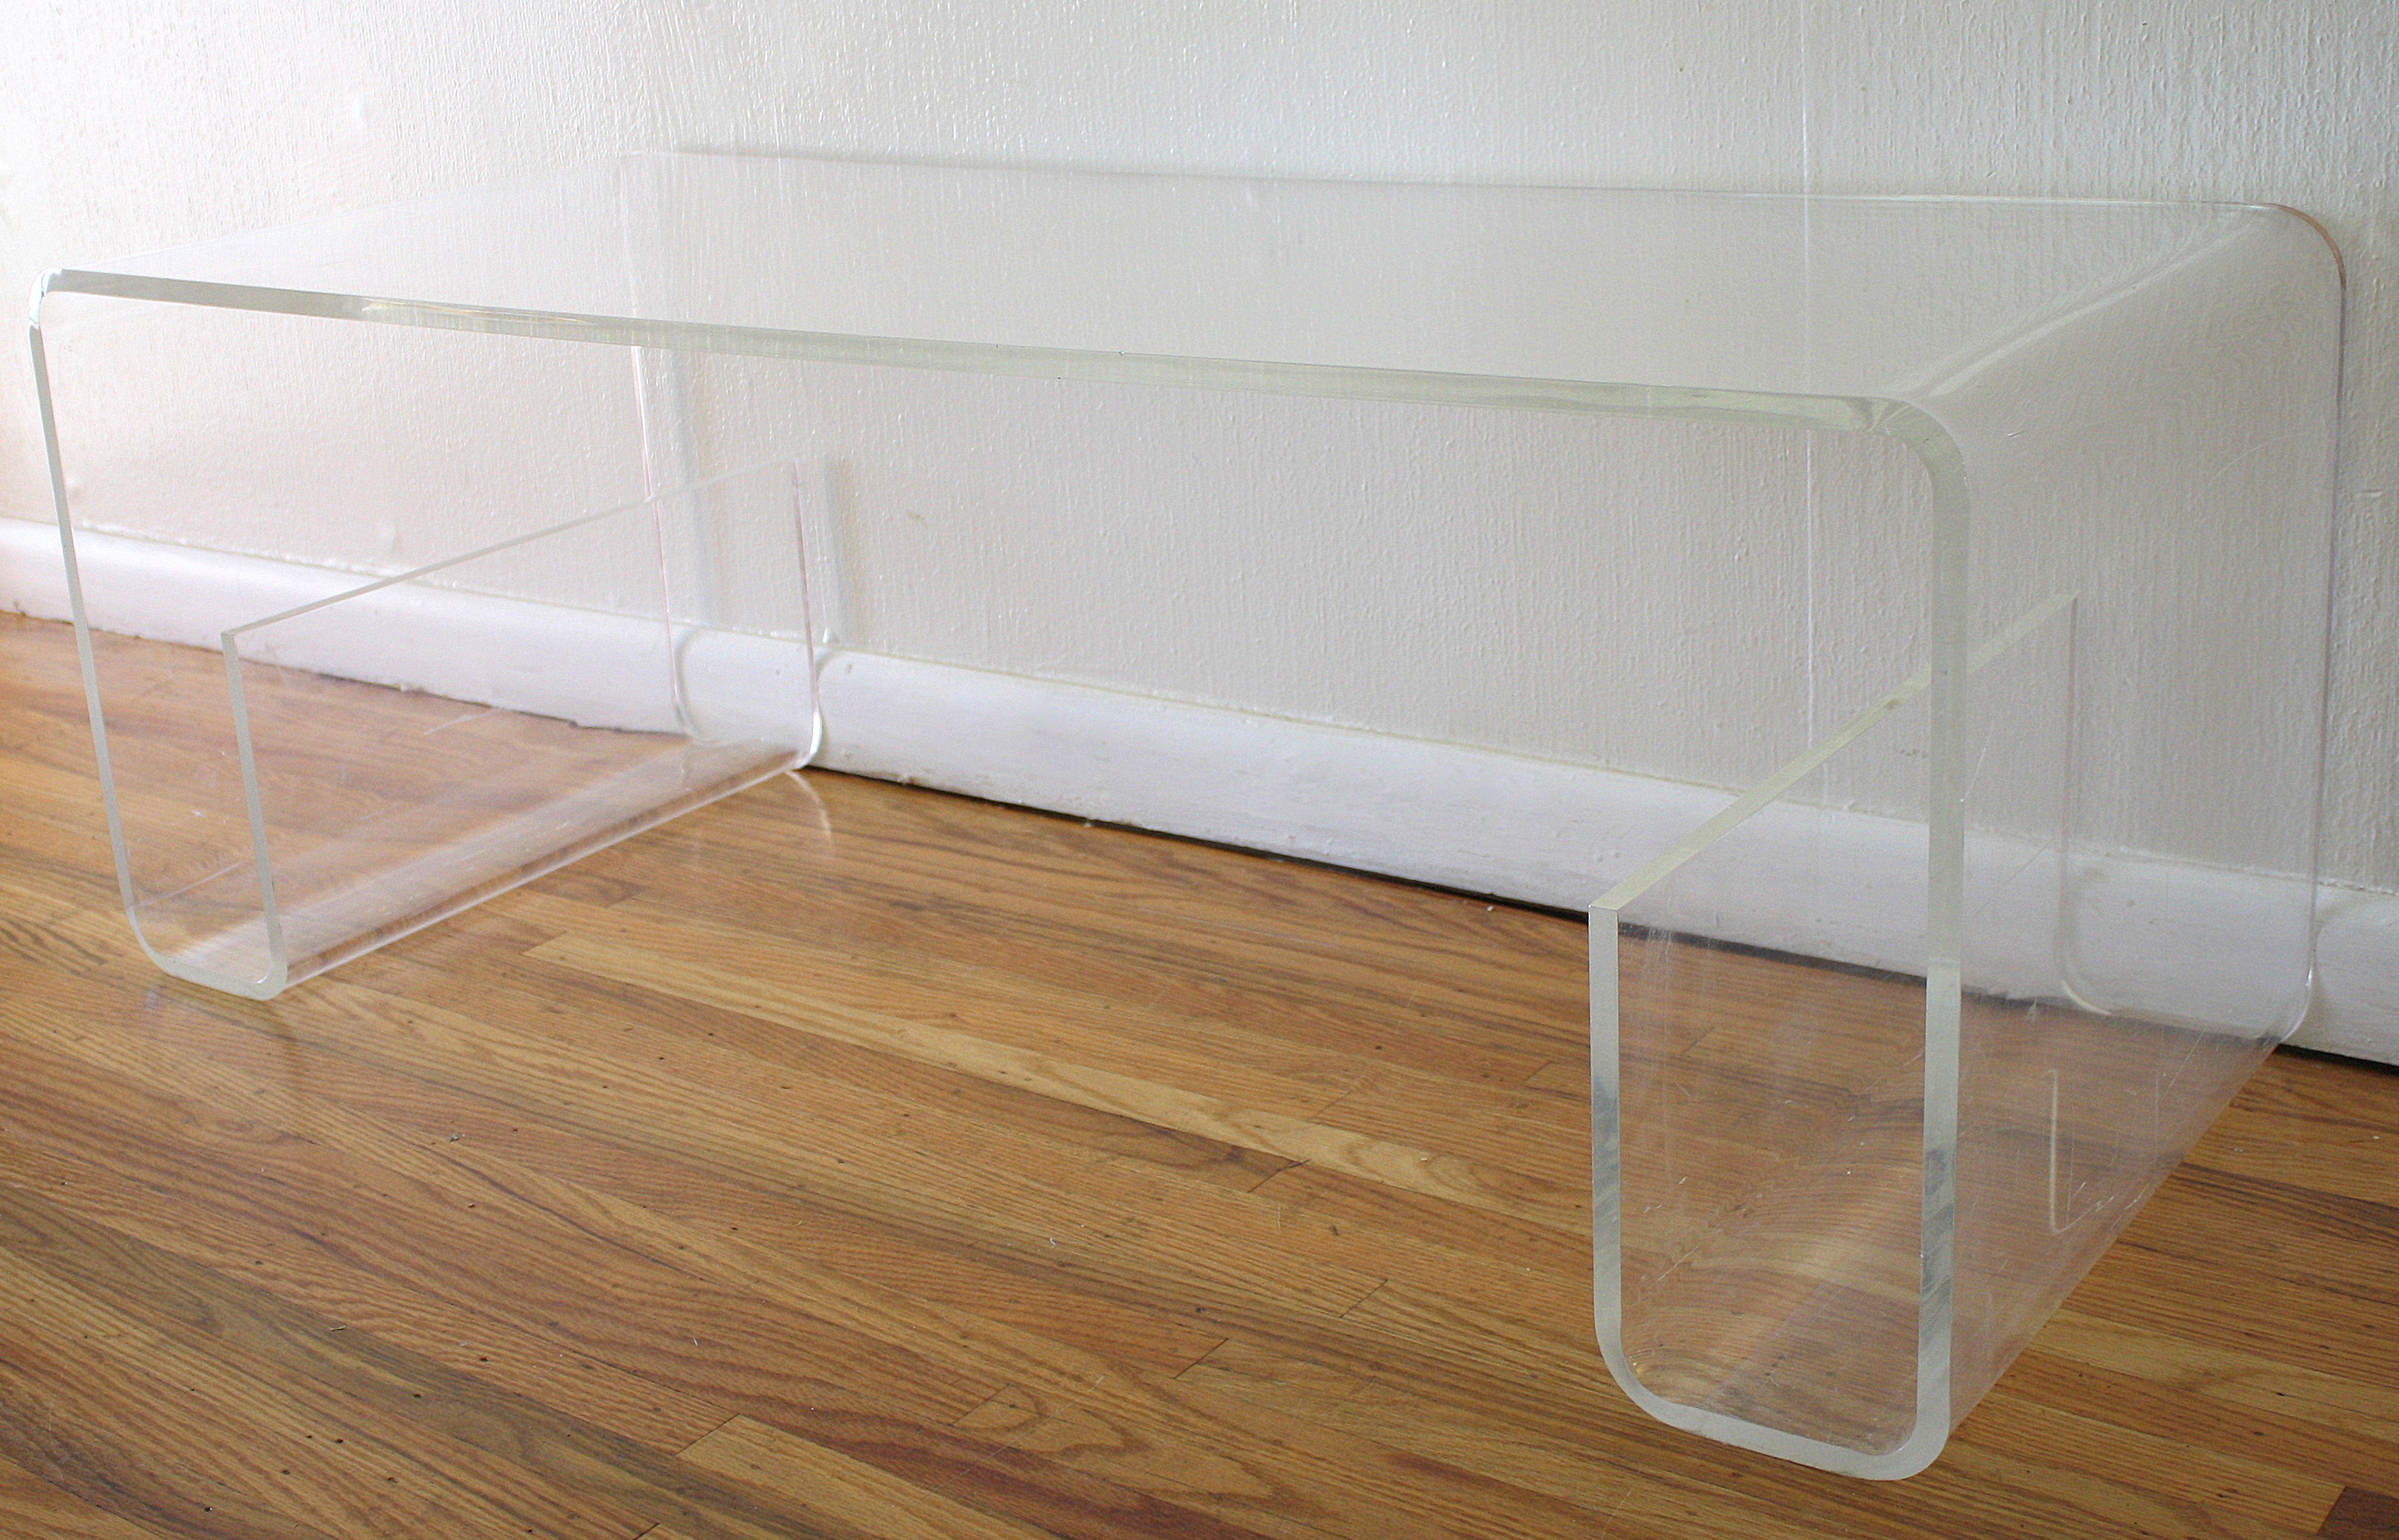 Mesmerizing acrylic coffee table for home furniture with clear acrylic coffee table